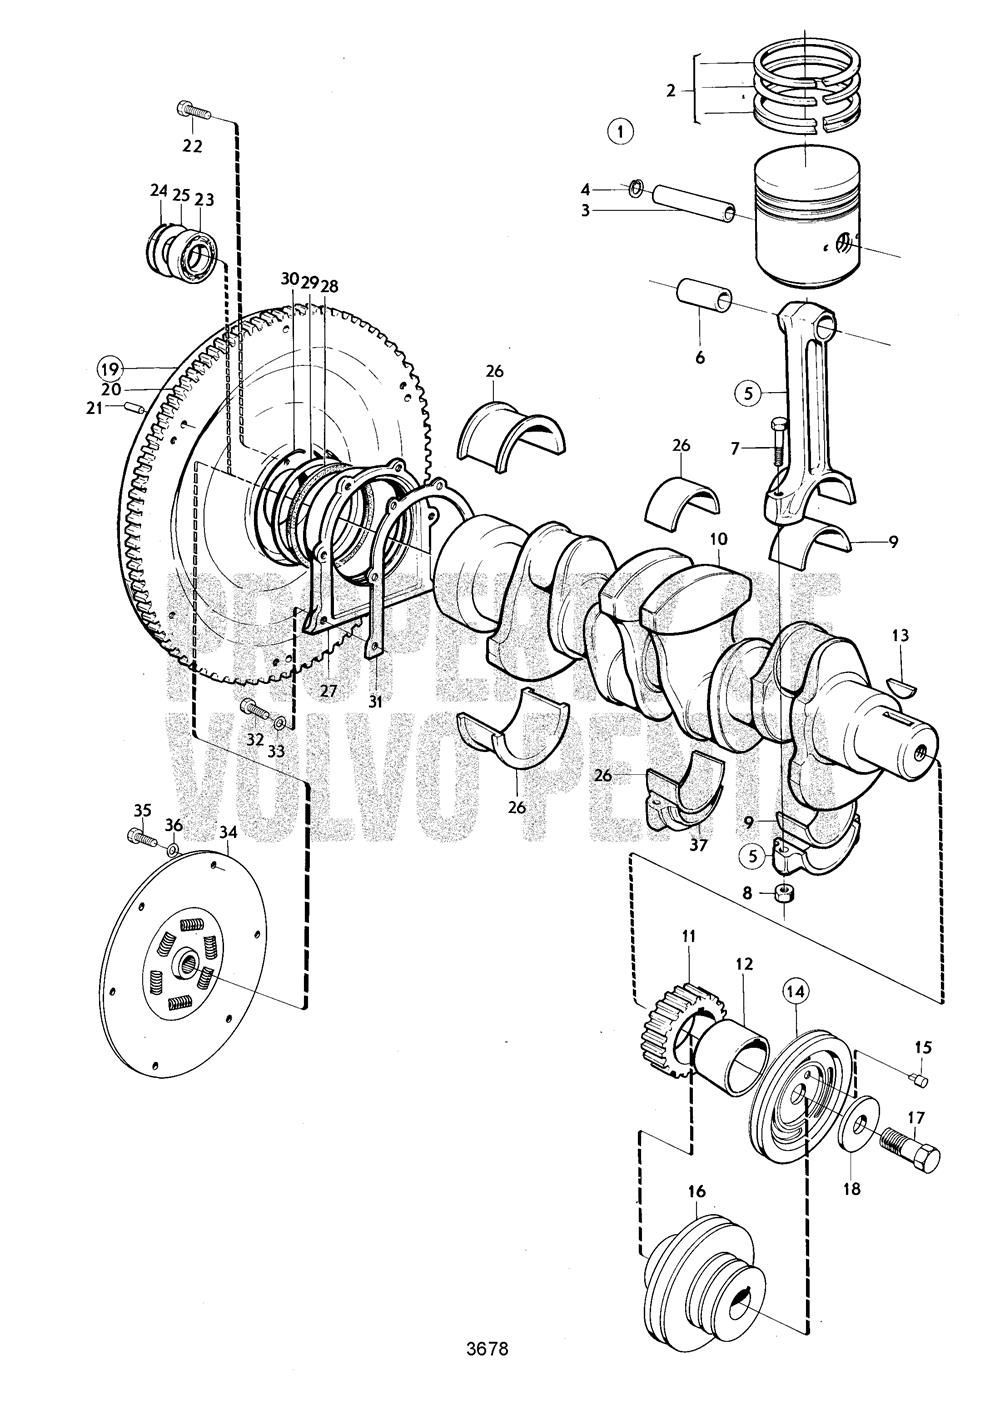 hight resolution of watch parts diagram group picture image by tag keywordpictures pt cruiser engine diagram group picture image by tag